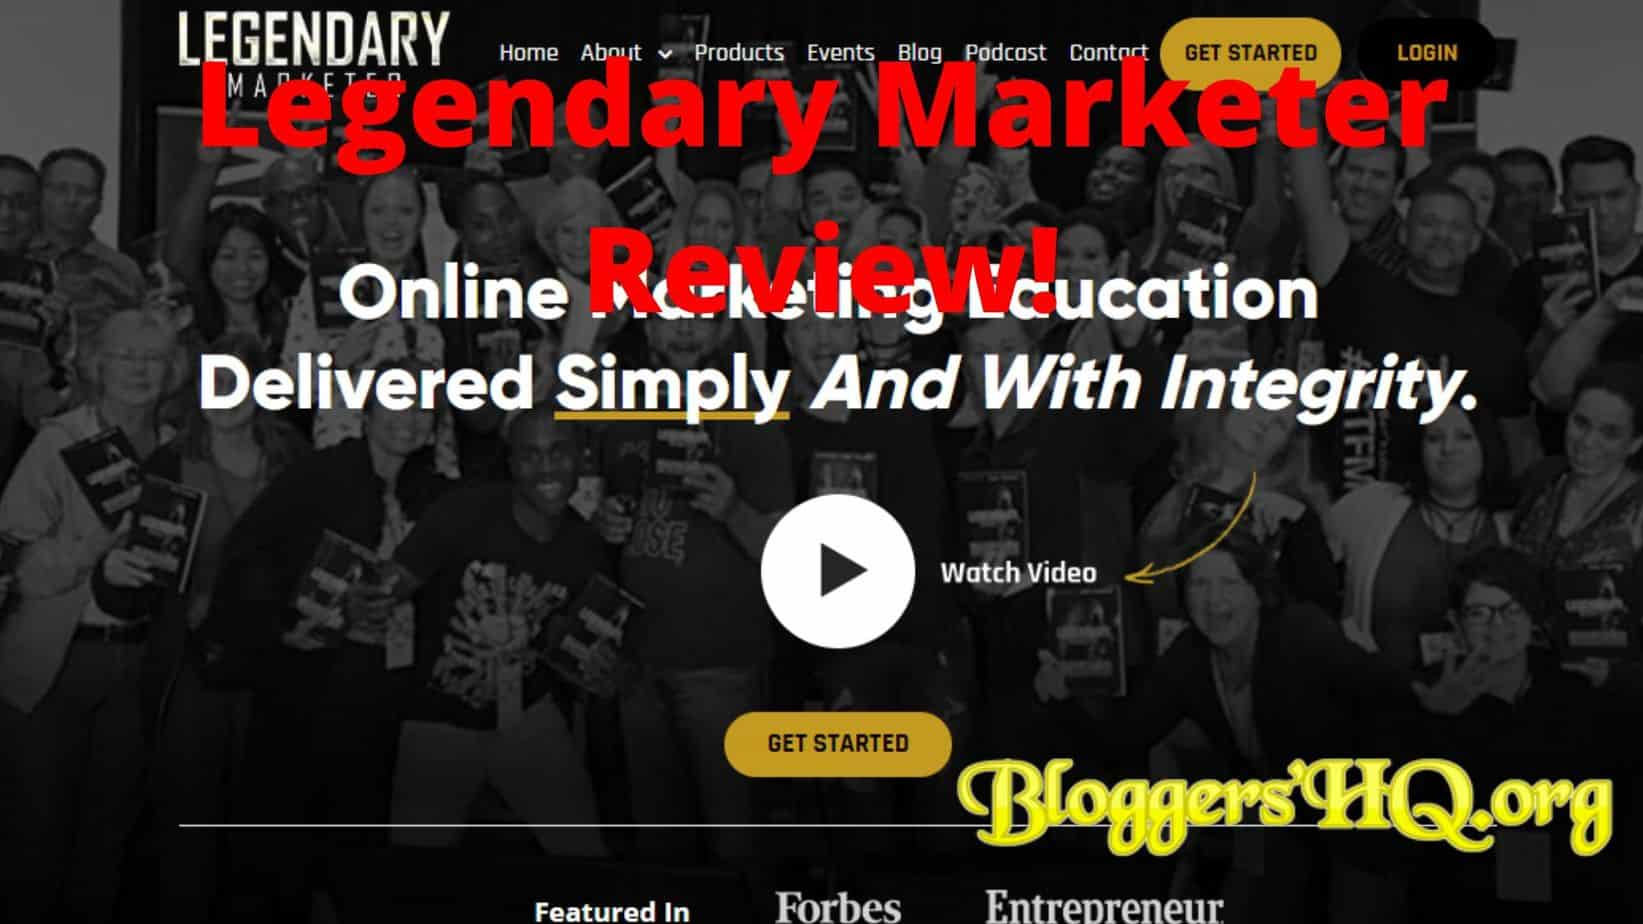 Buy Legendary Marketer Internet Marketing Program For Free